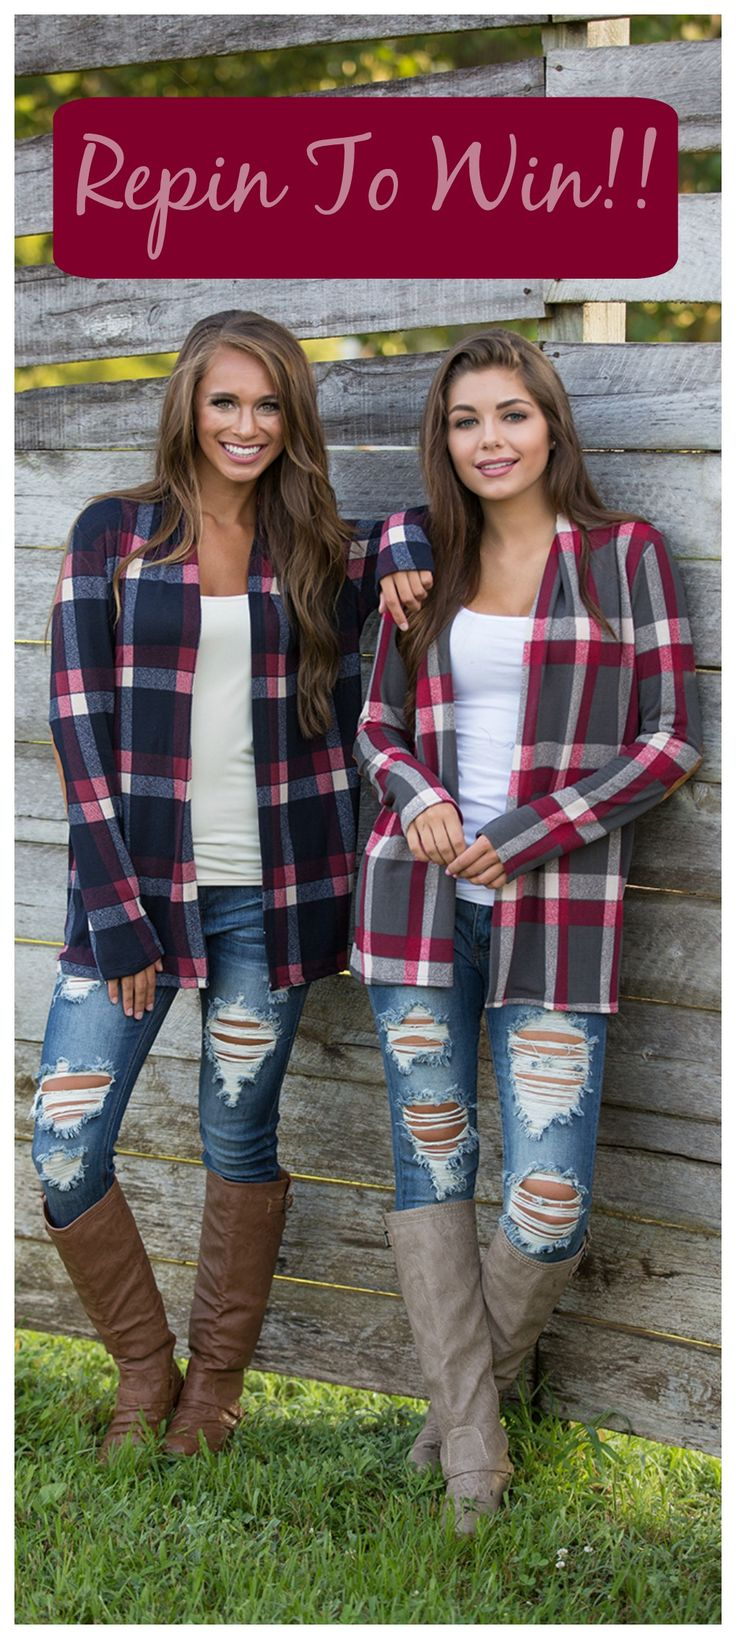 ***CONTEST TIME***  Repin This Post for the chance to be entered in our giveaway. 1 lucky person will win our Find A New Trail Cardigan (color of their choice)! Must be following The Pink Lily Boutique on Pinterest to win. Winner will be chosen Wednesday, September 21st!!